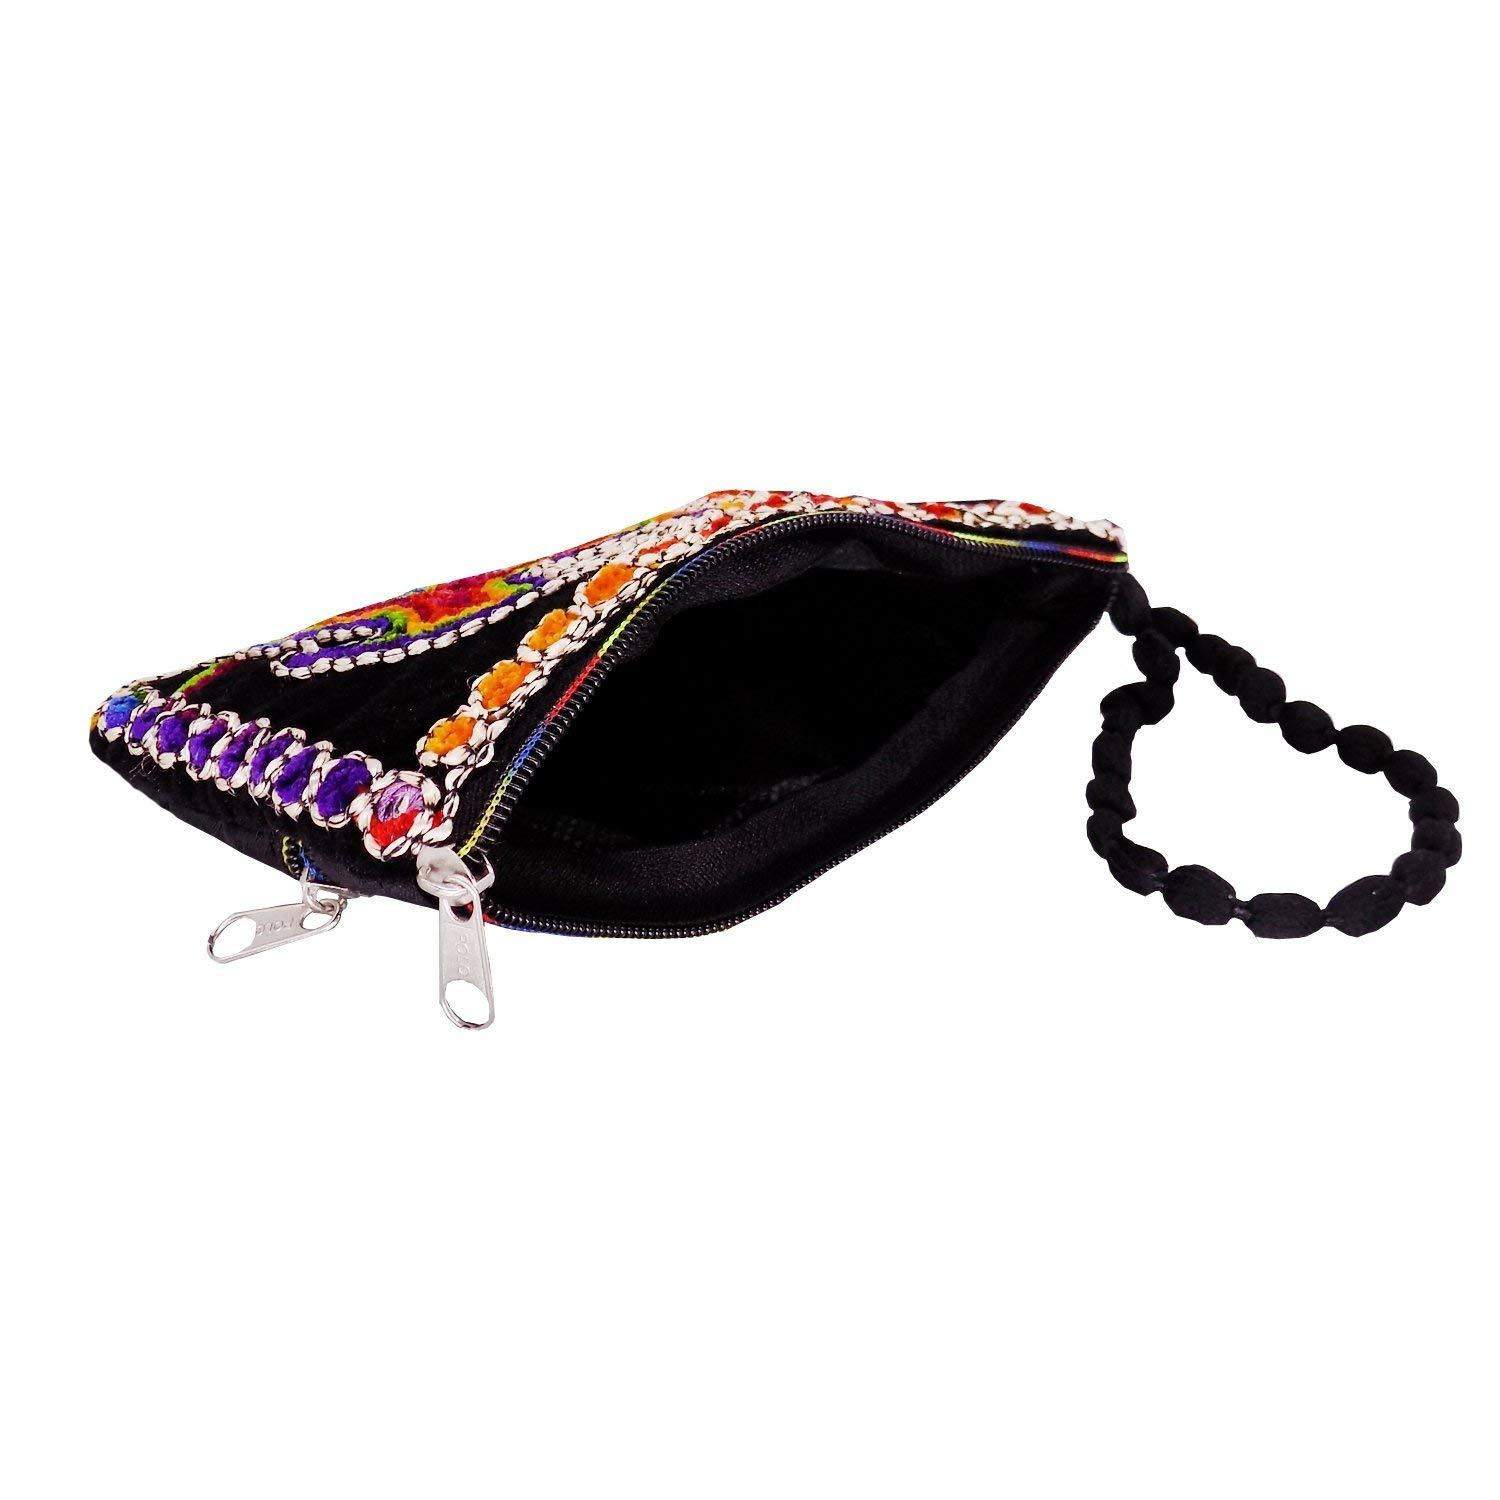 Ethnic Raw Silk Mobile Pouch Waist Clip (Black) - Bagaholics Gift